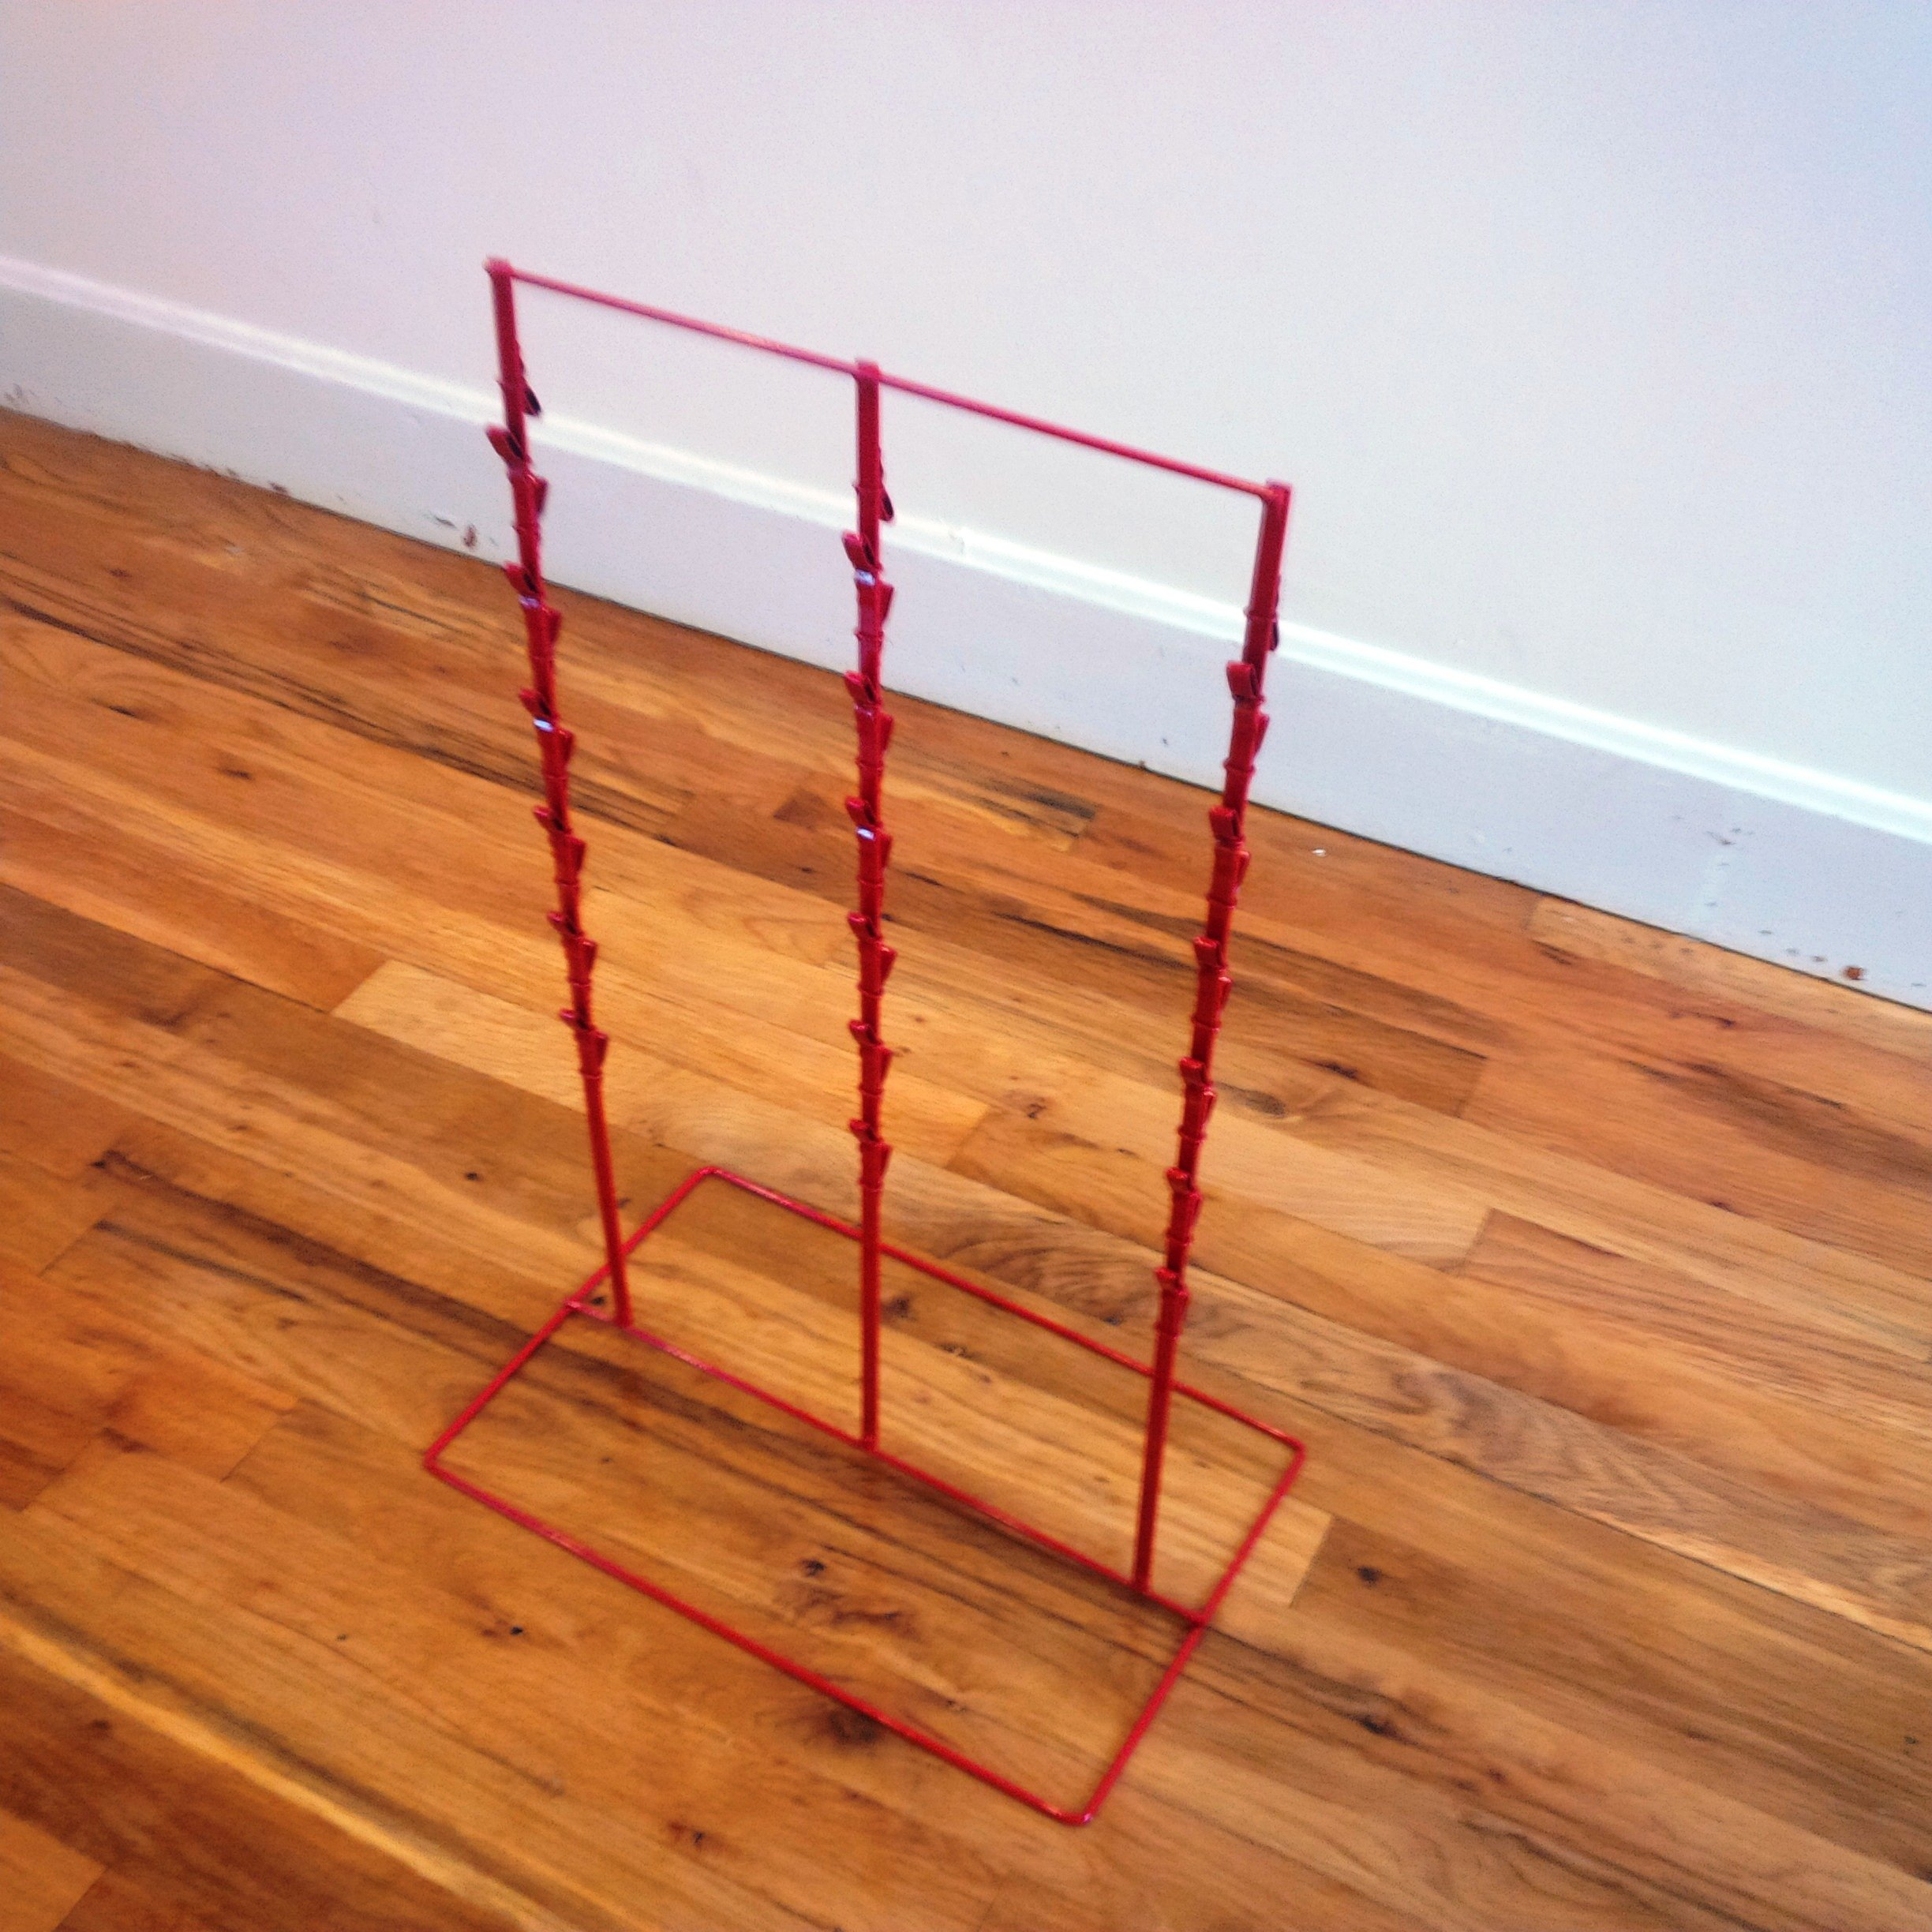 Single 3 Round Strip 6'' Apart 39 Chip Counter Potato Chip Display Rack in Red by counter rack (Image #2)